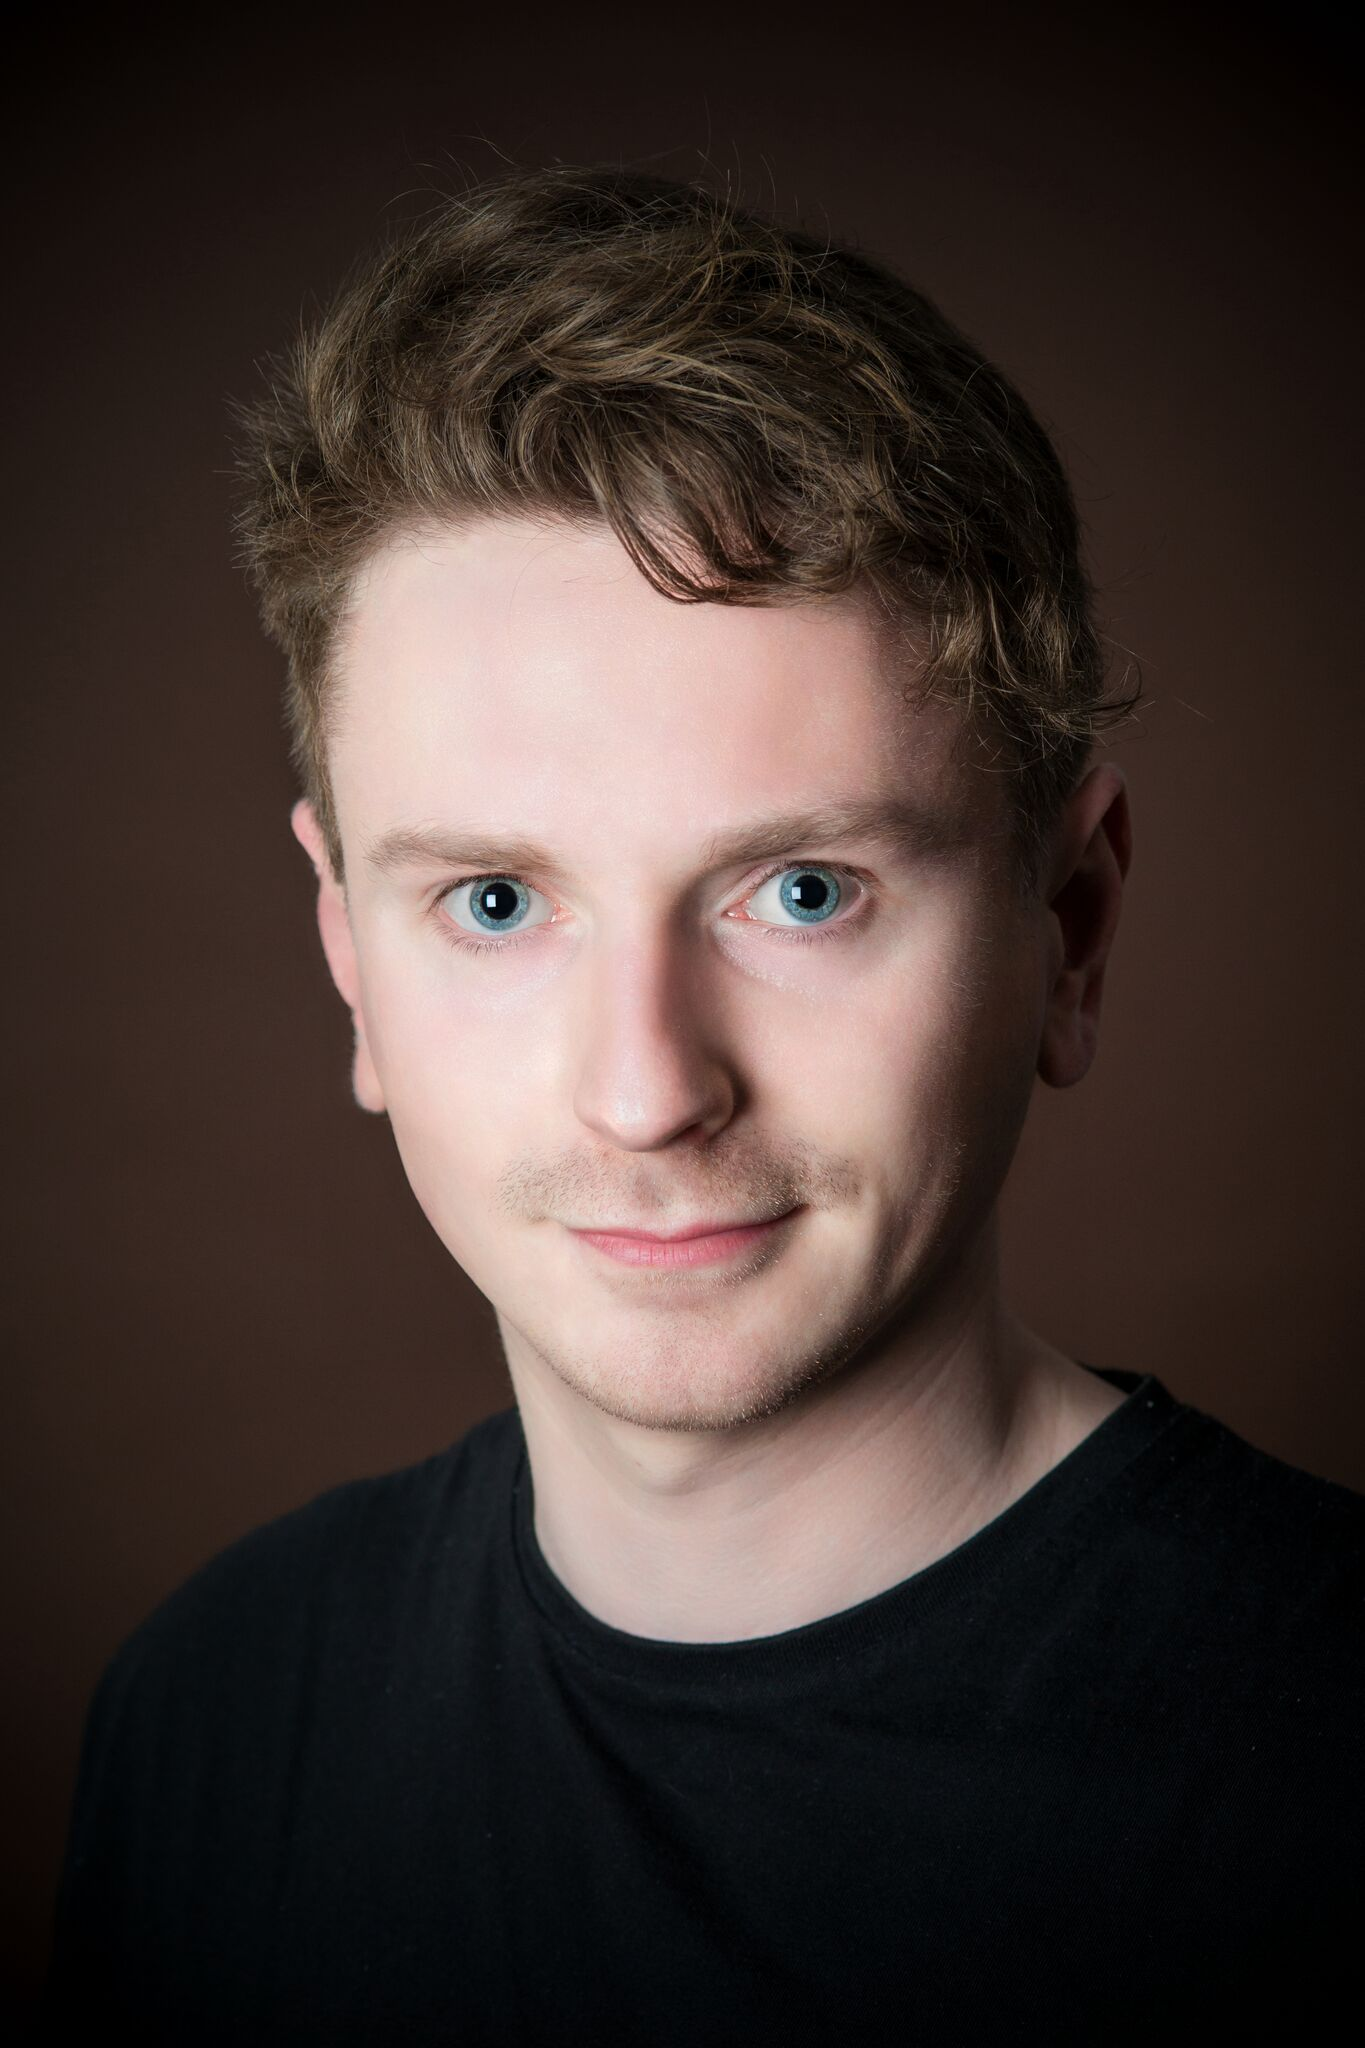 William Foote  - Core Artist  Played  Rhys  in NWT's summer tour of  Kara Sevda  going to Ithaca, Tampa, Minnesota, Portland, D.C., and Edinburgh. He originated the role in their first production at the 2016 Edinburgh Fringe Festival.